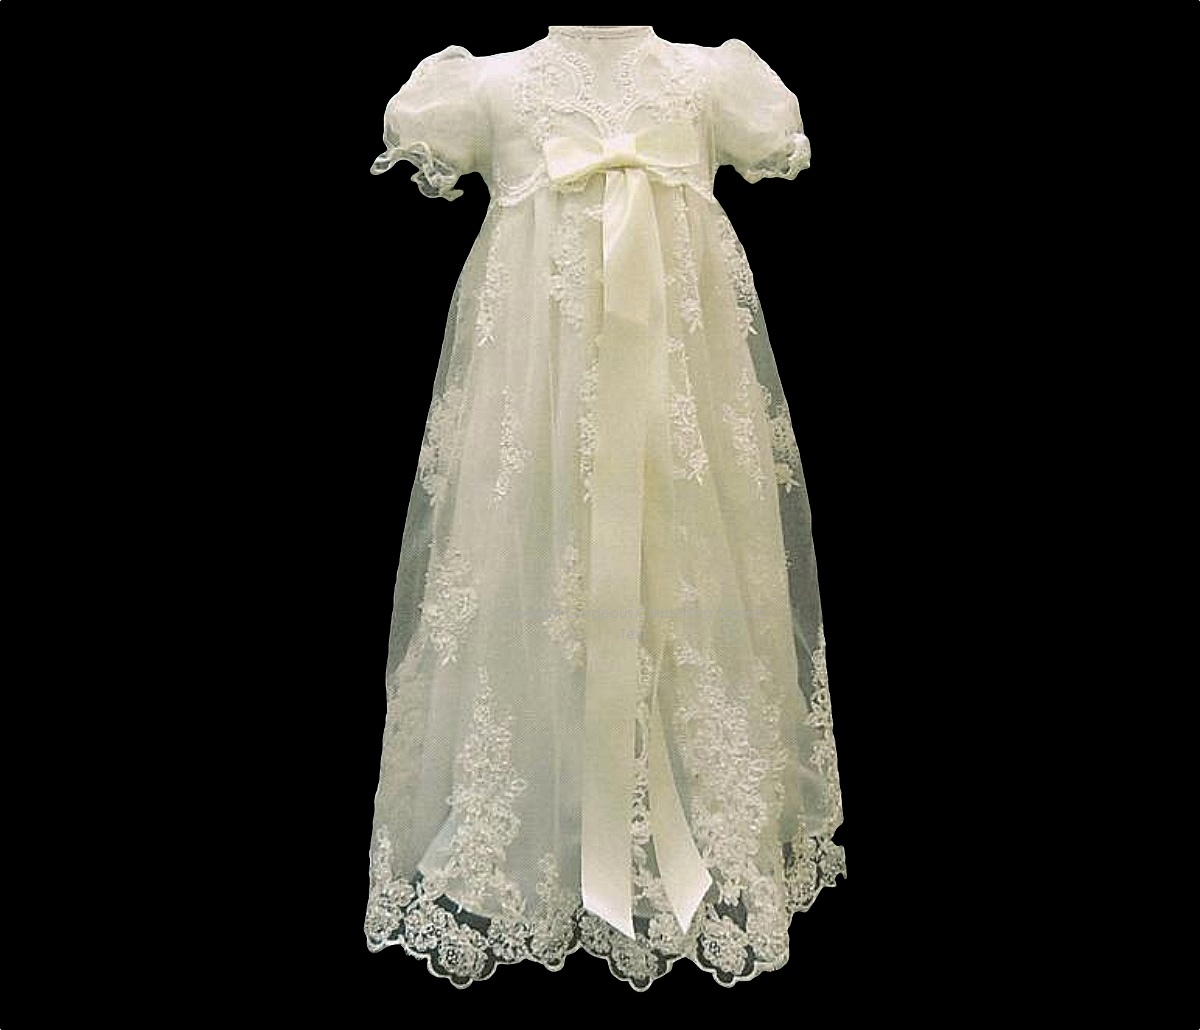 Christening Gowns From Wedding Dresses: Girls Christening Gowns